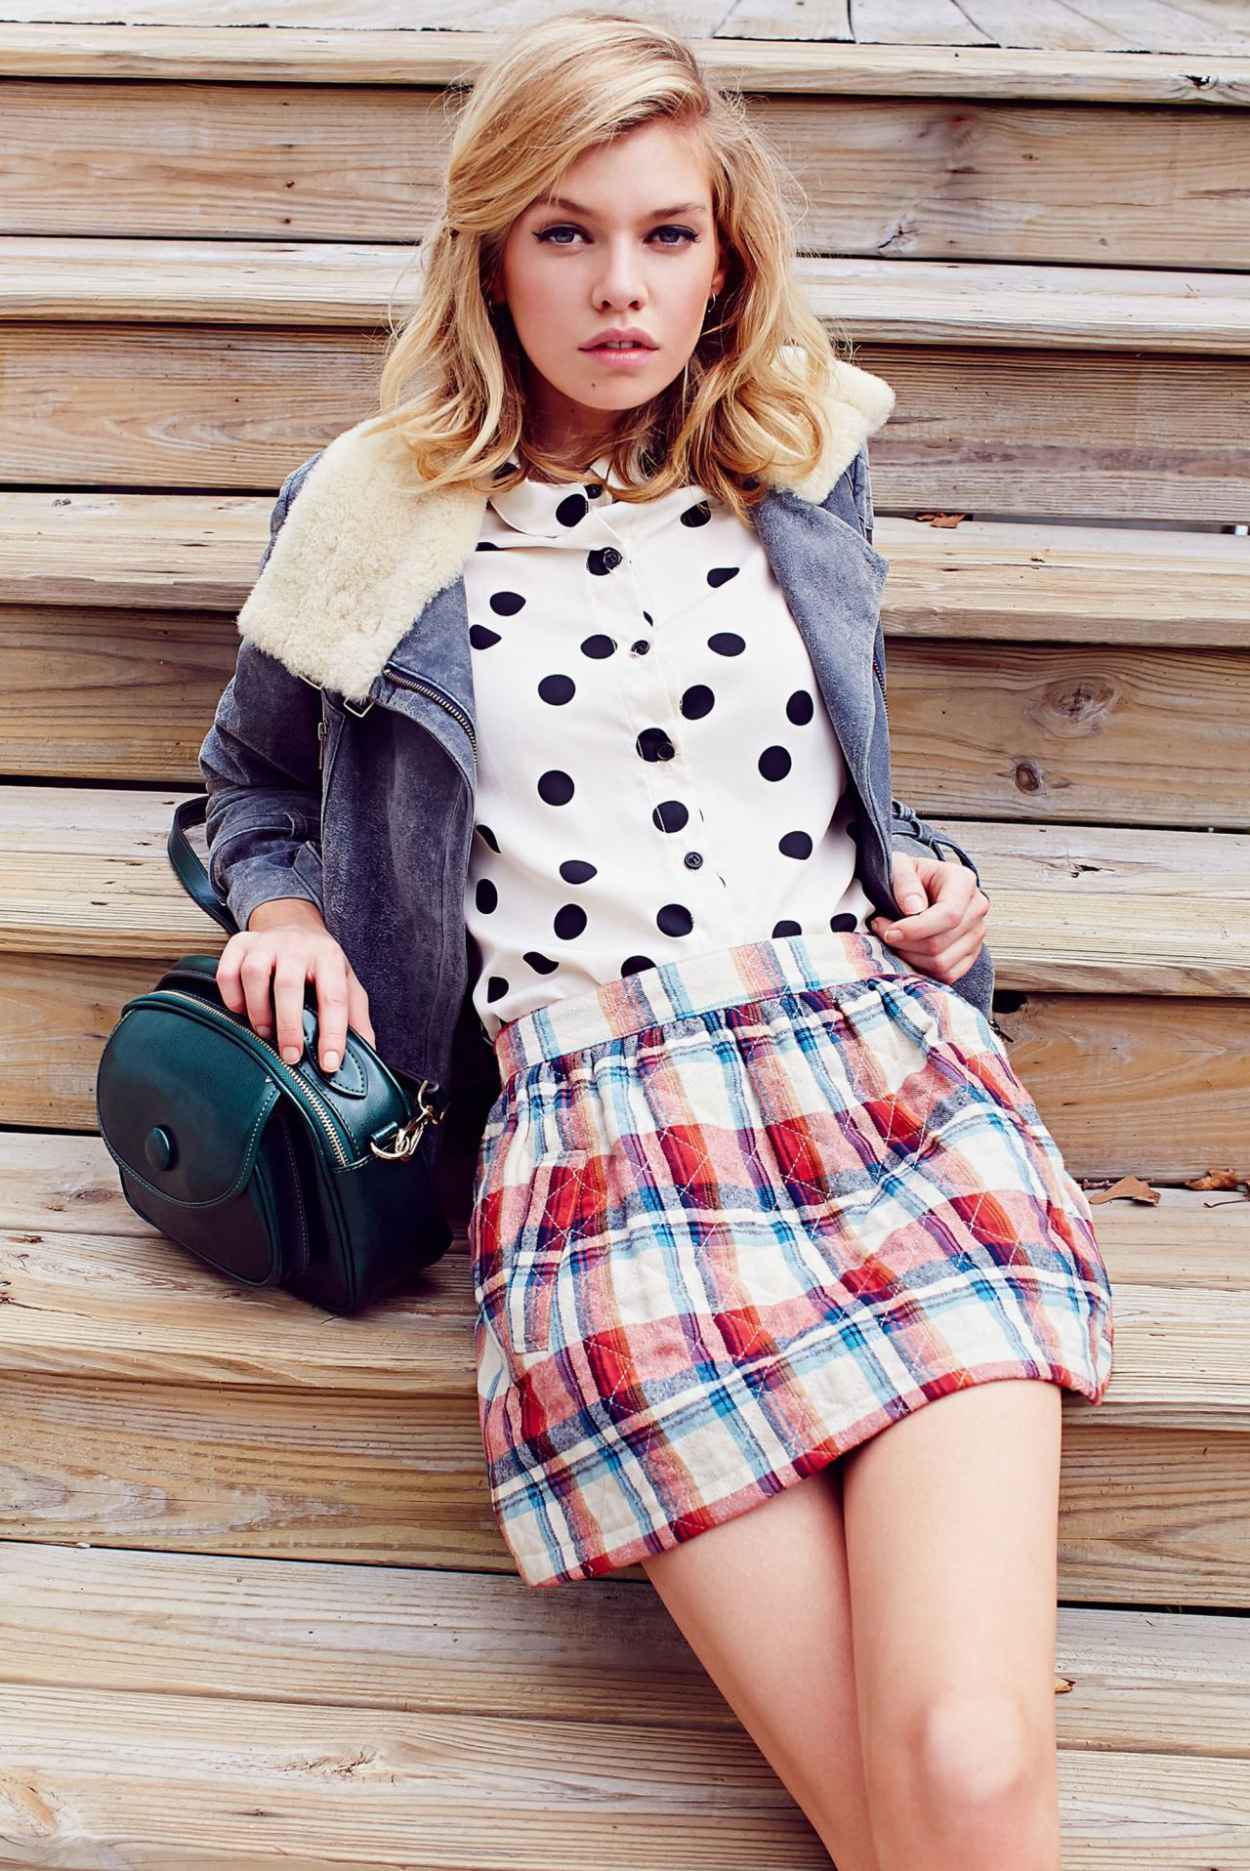 Stella Maxwell - Urban Outfitters (2014)-1